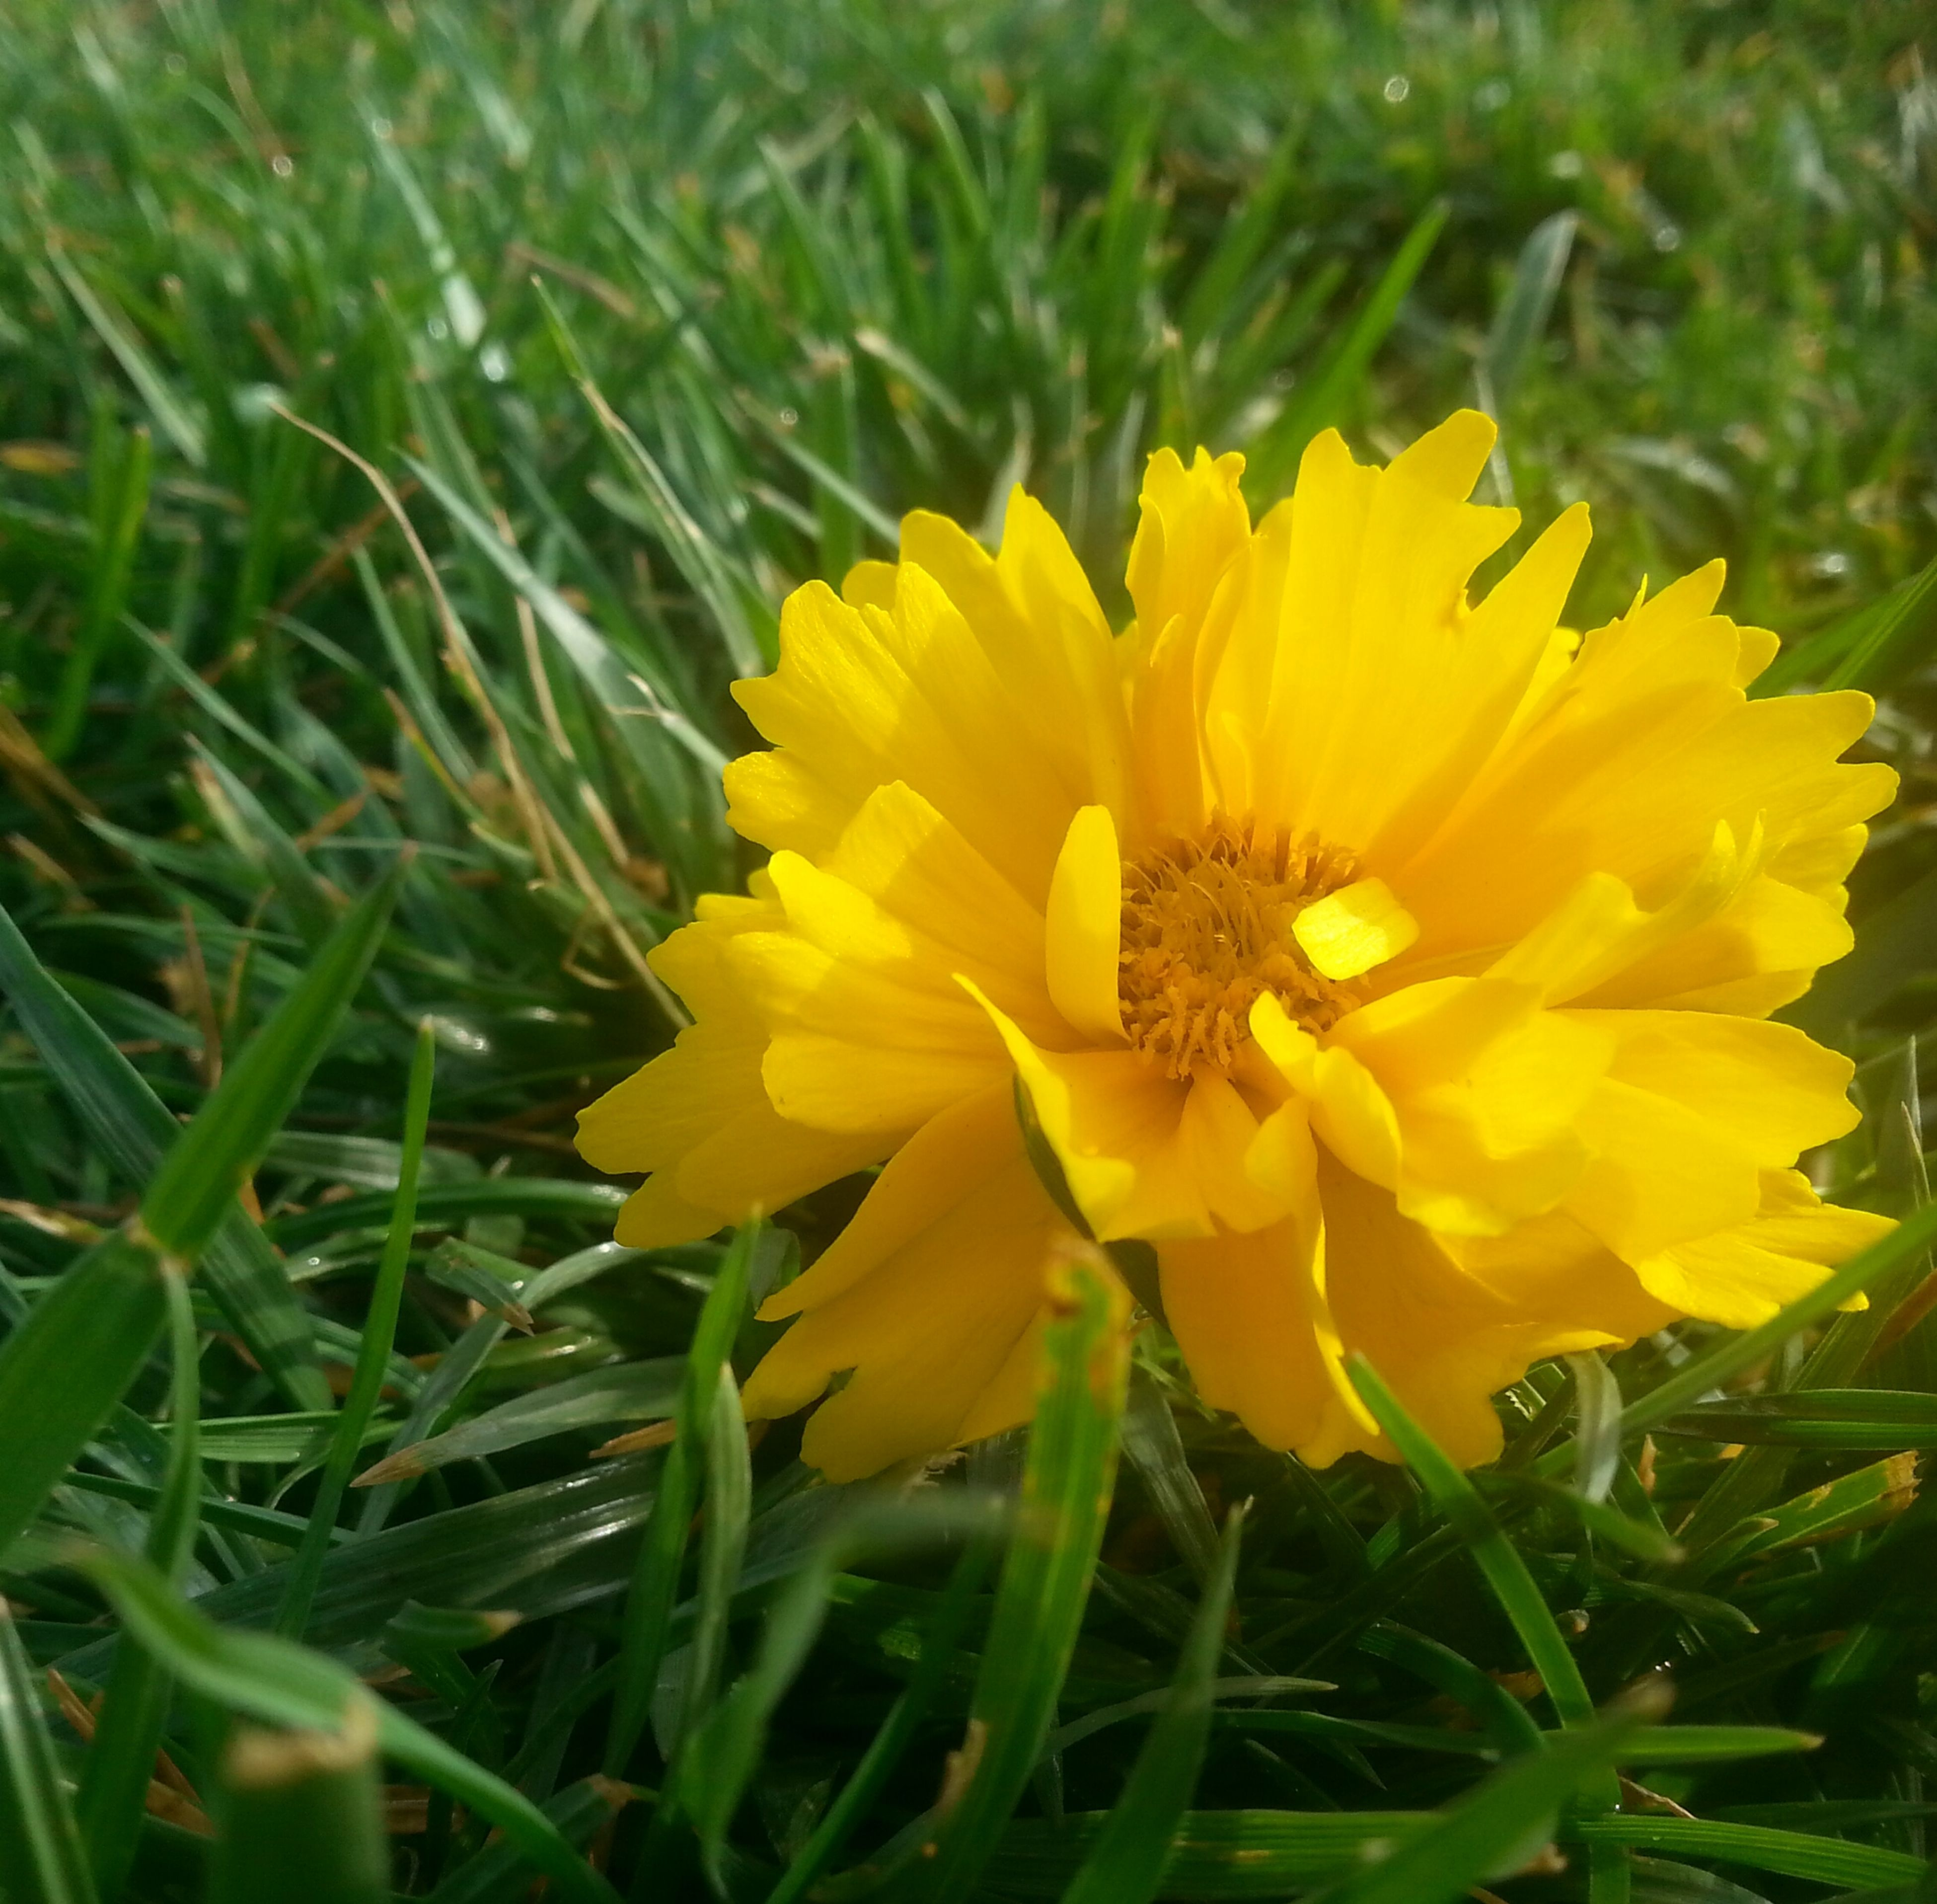 flower, yellow, nature, petal, beauty in nature, growth, fragility, plant, field, freshness, flower head, grass, no people, outdoors, close-up, day, blooming